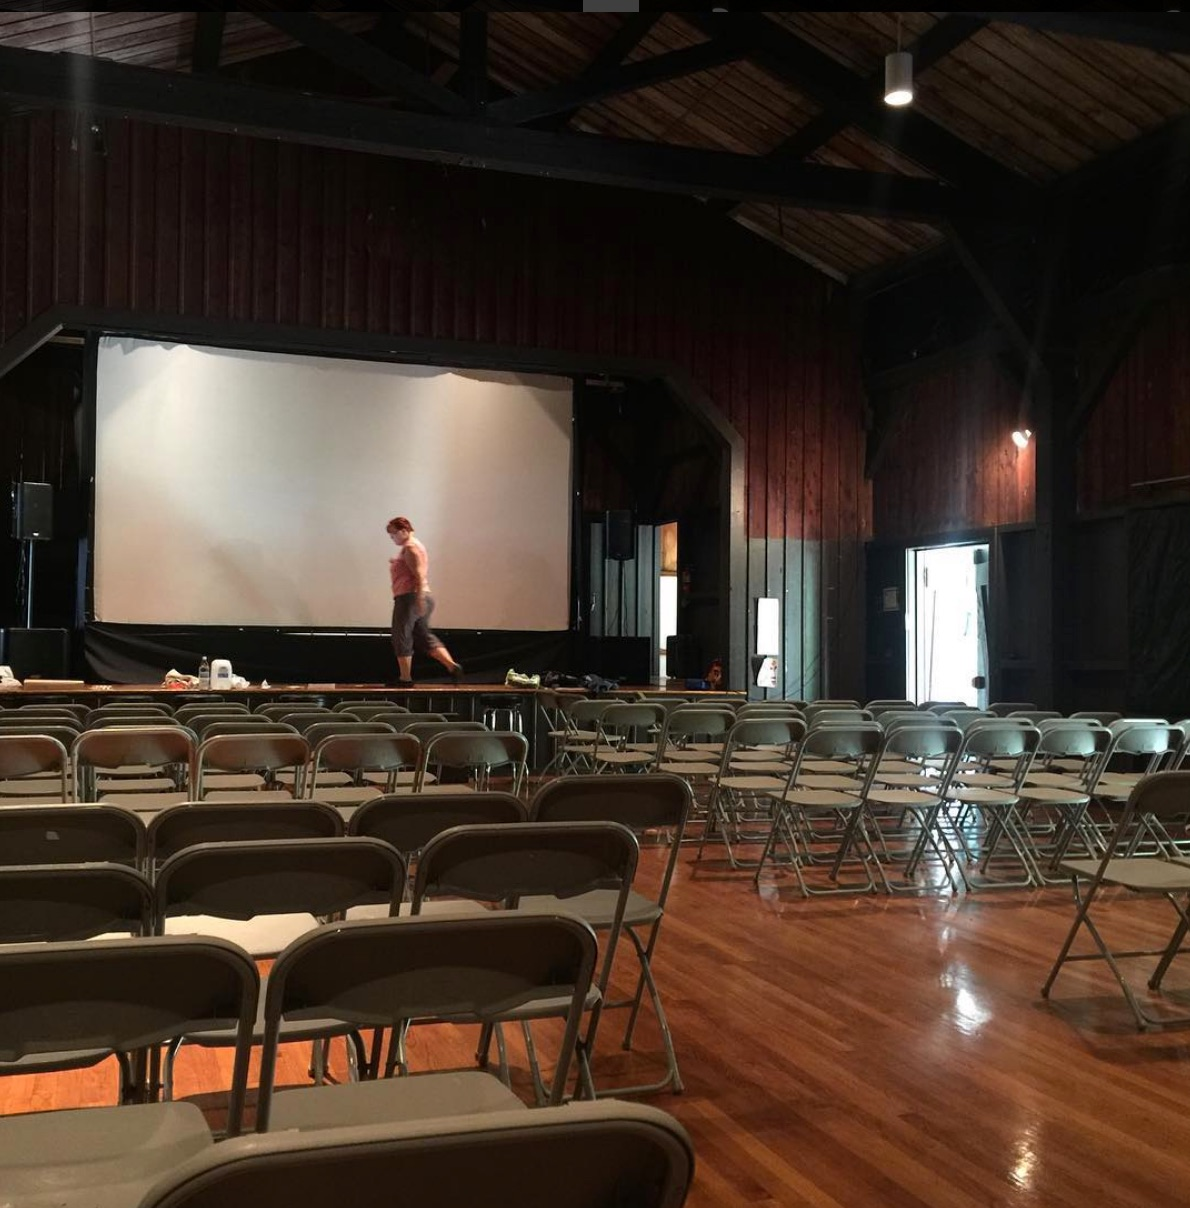 Screen up! Photo Credit: Beacon Independent Film Festival